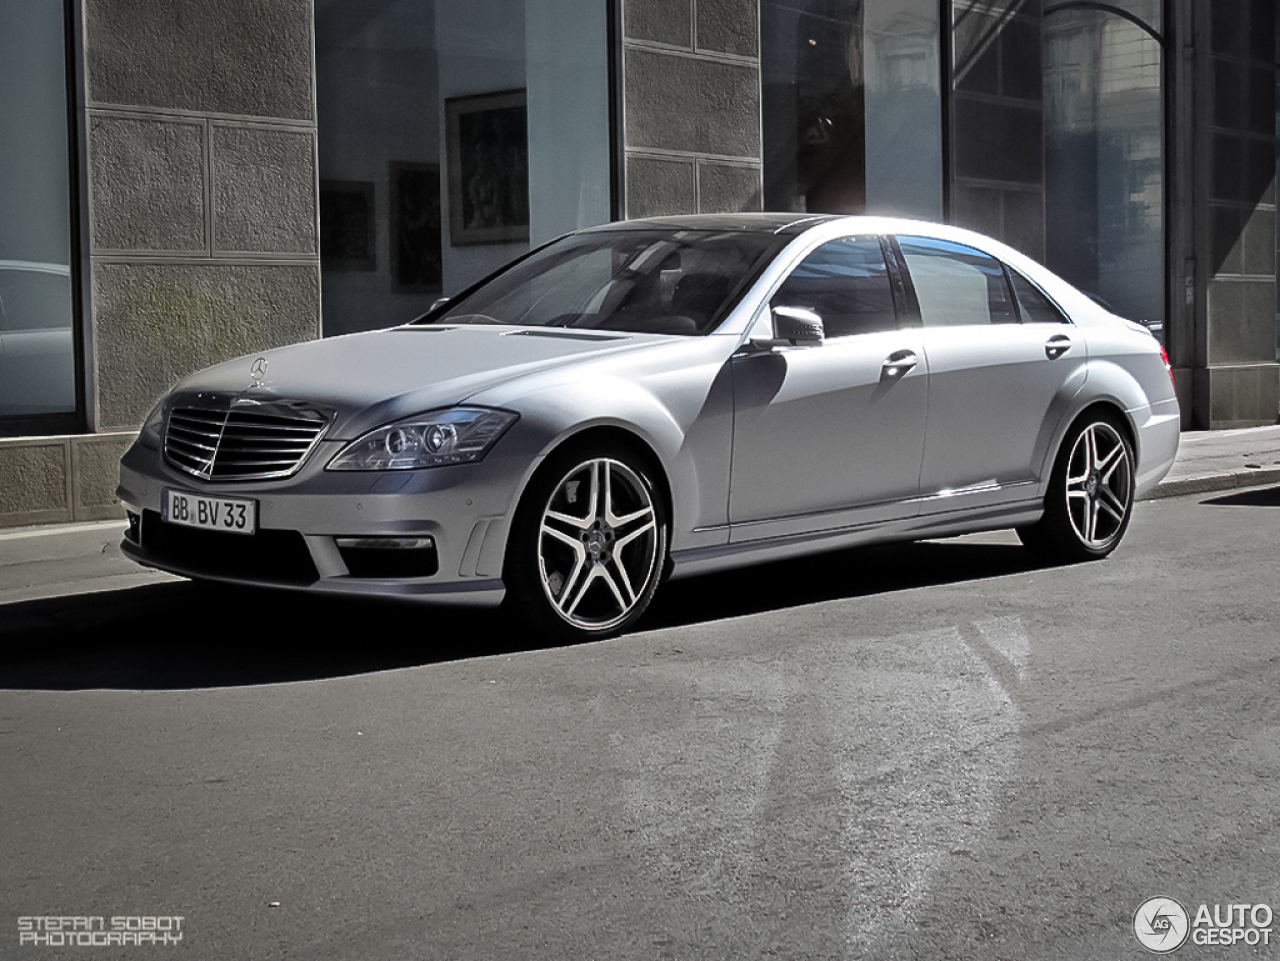 Mercedes benz s 63 amg w221 2010 12 january 2013 for Mercedes benz w221 price